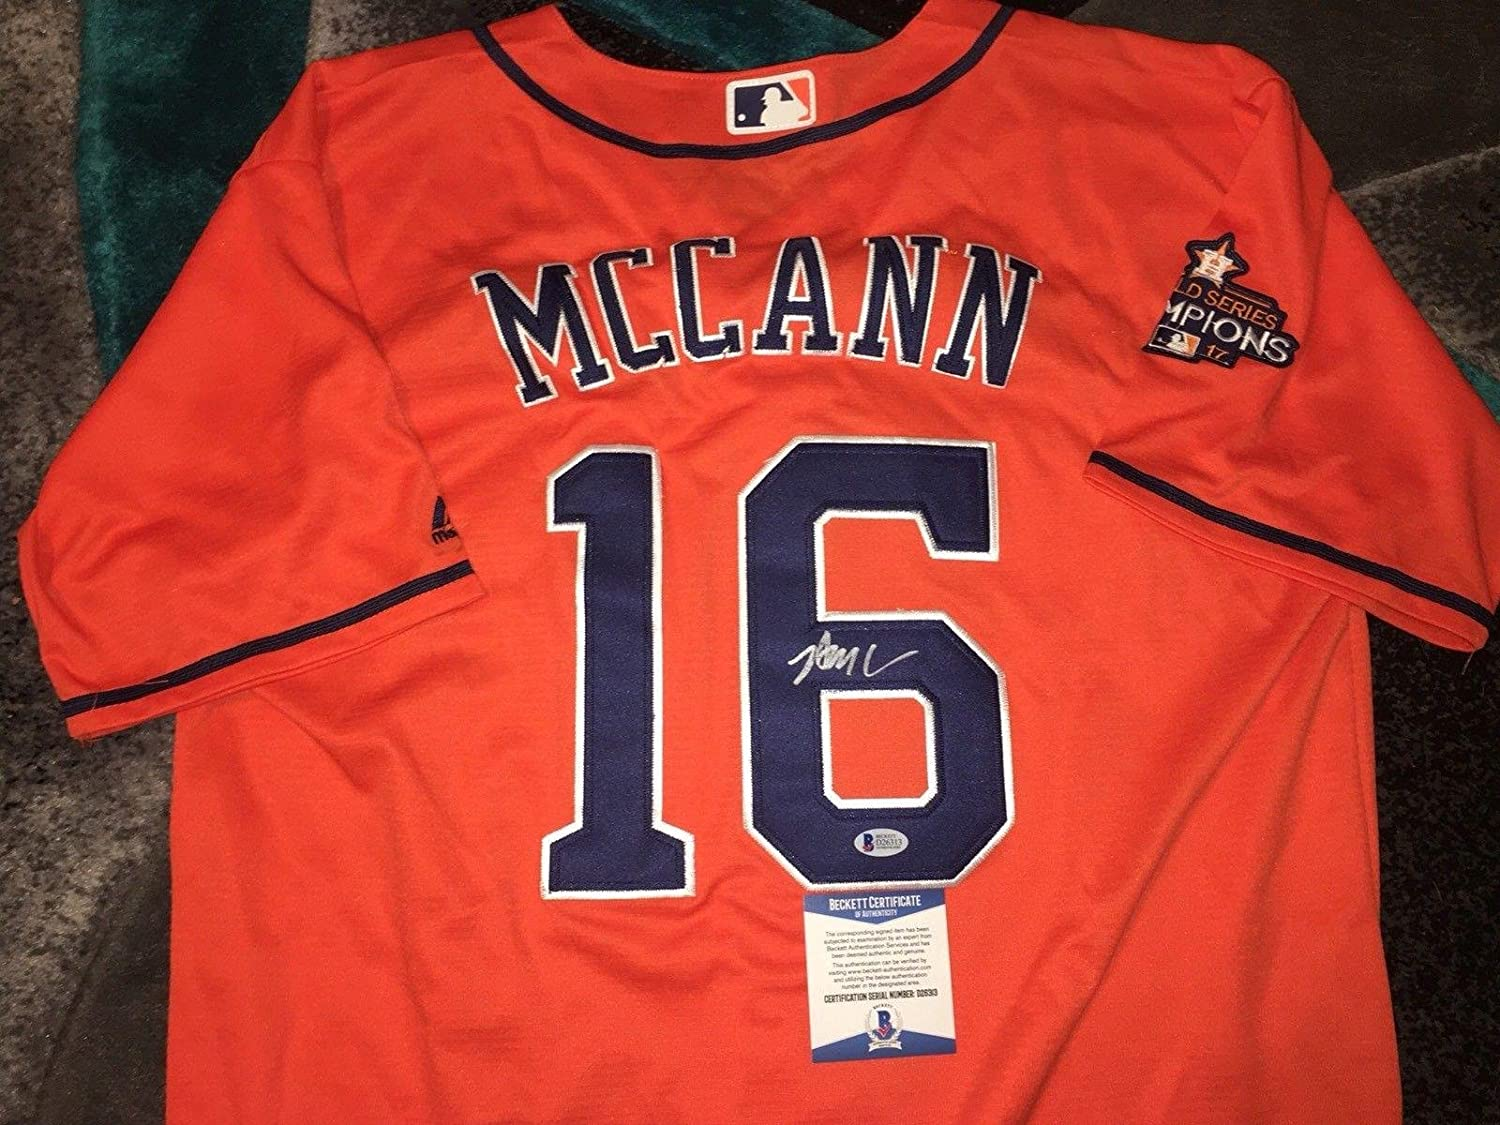 Brian McCann Autographed Jersey - Strong WS Champs Beckett - Beckett Authentication - Autographed MLB Jerseys